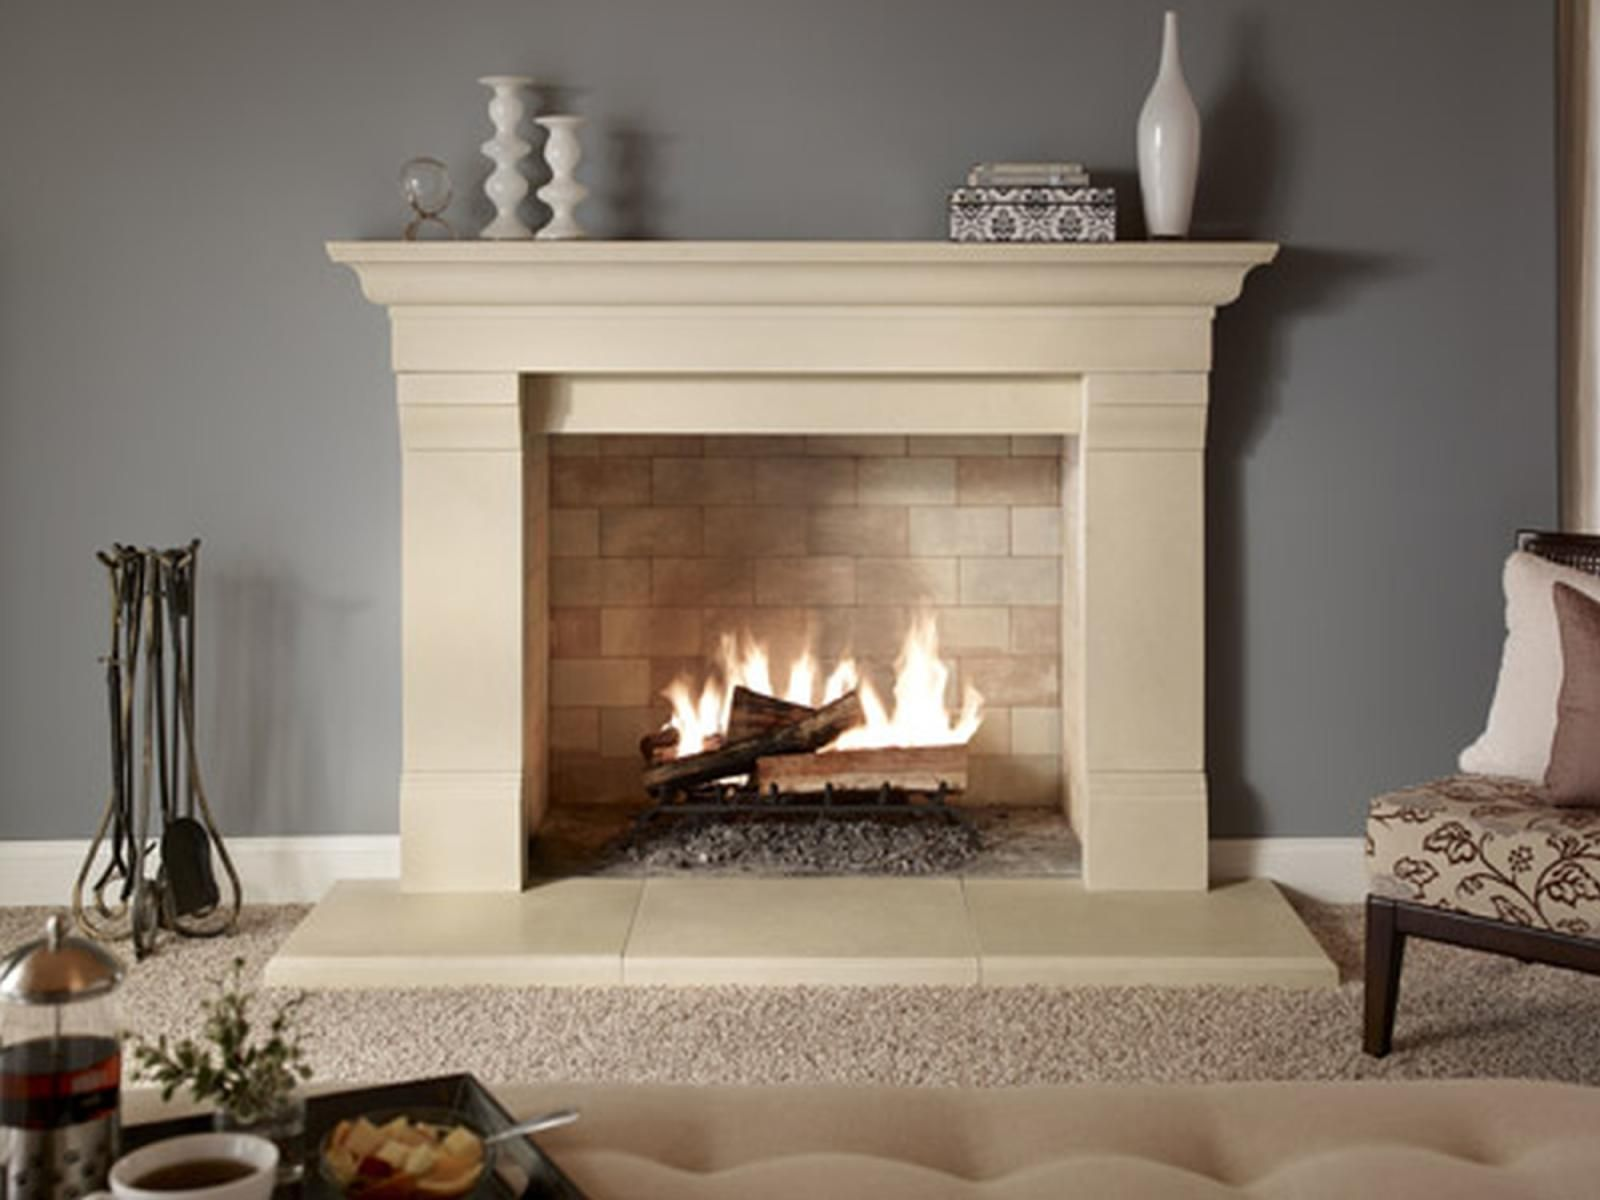 best 720 fireplace ideas on pinterest fireplace candle holder